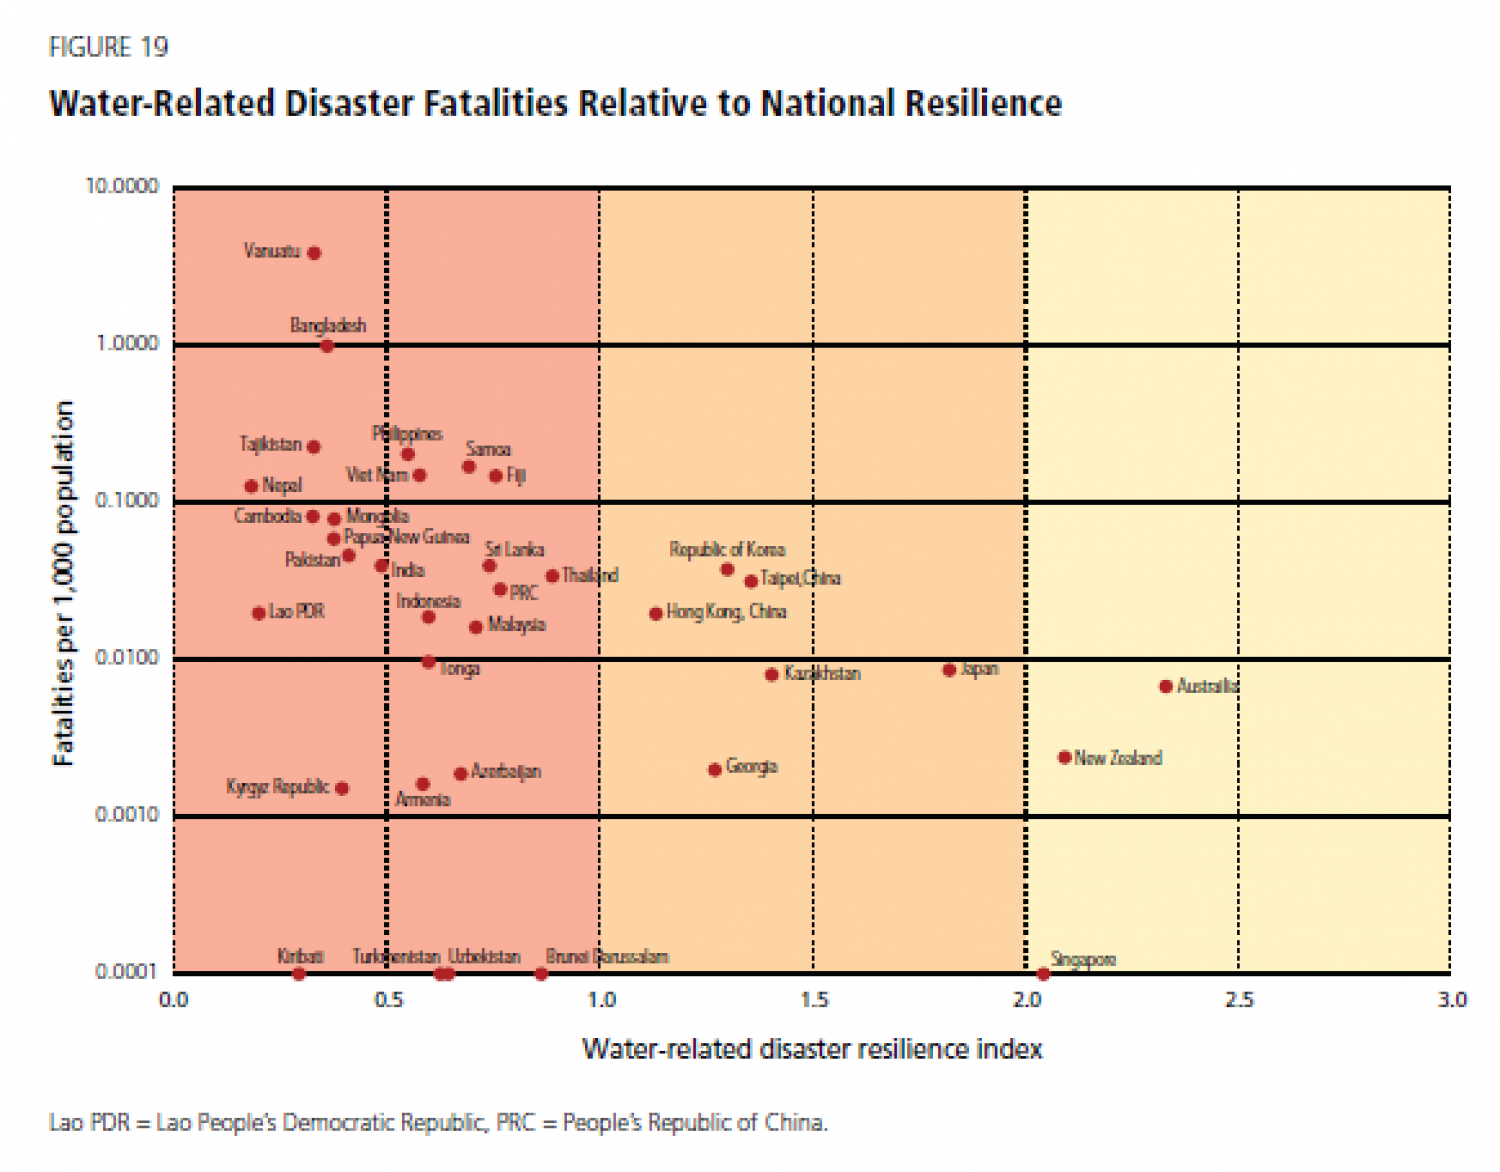 Water-Related Disaster Fatalities Relative to National Resilience Infographic